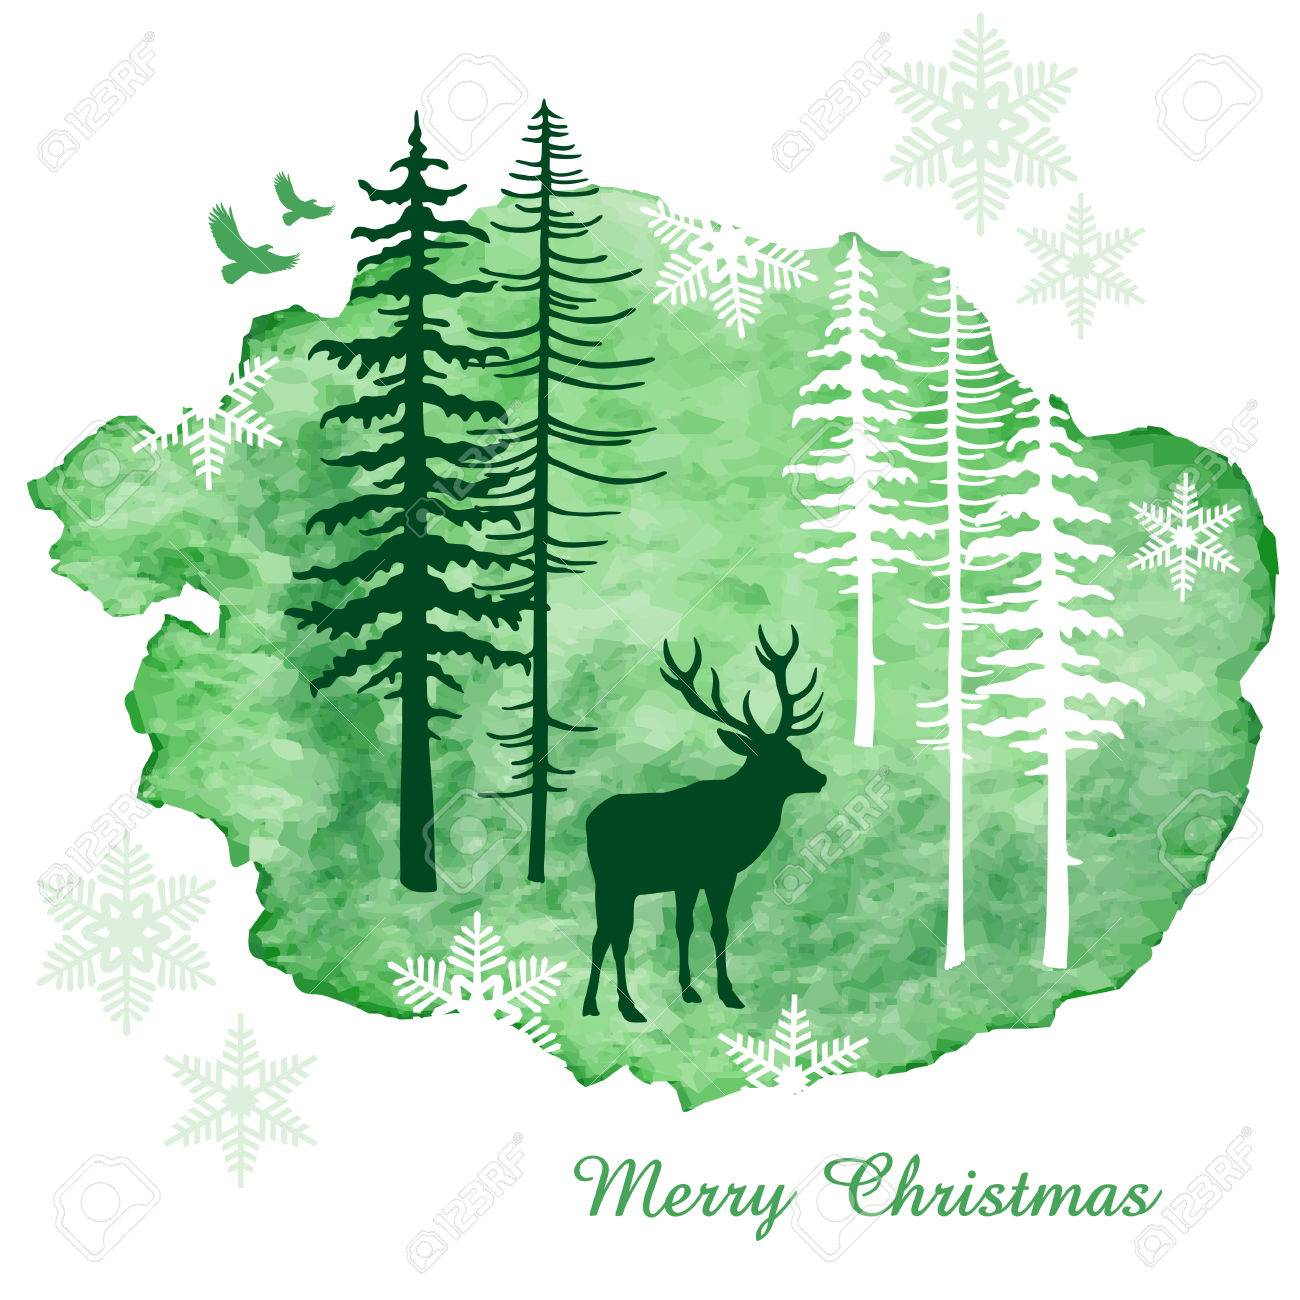 Christmas card with reindeer, watercolor painting, vector illustration - 48412161